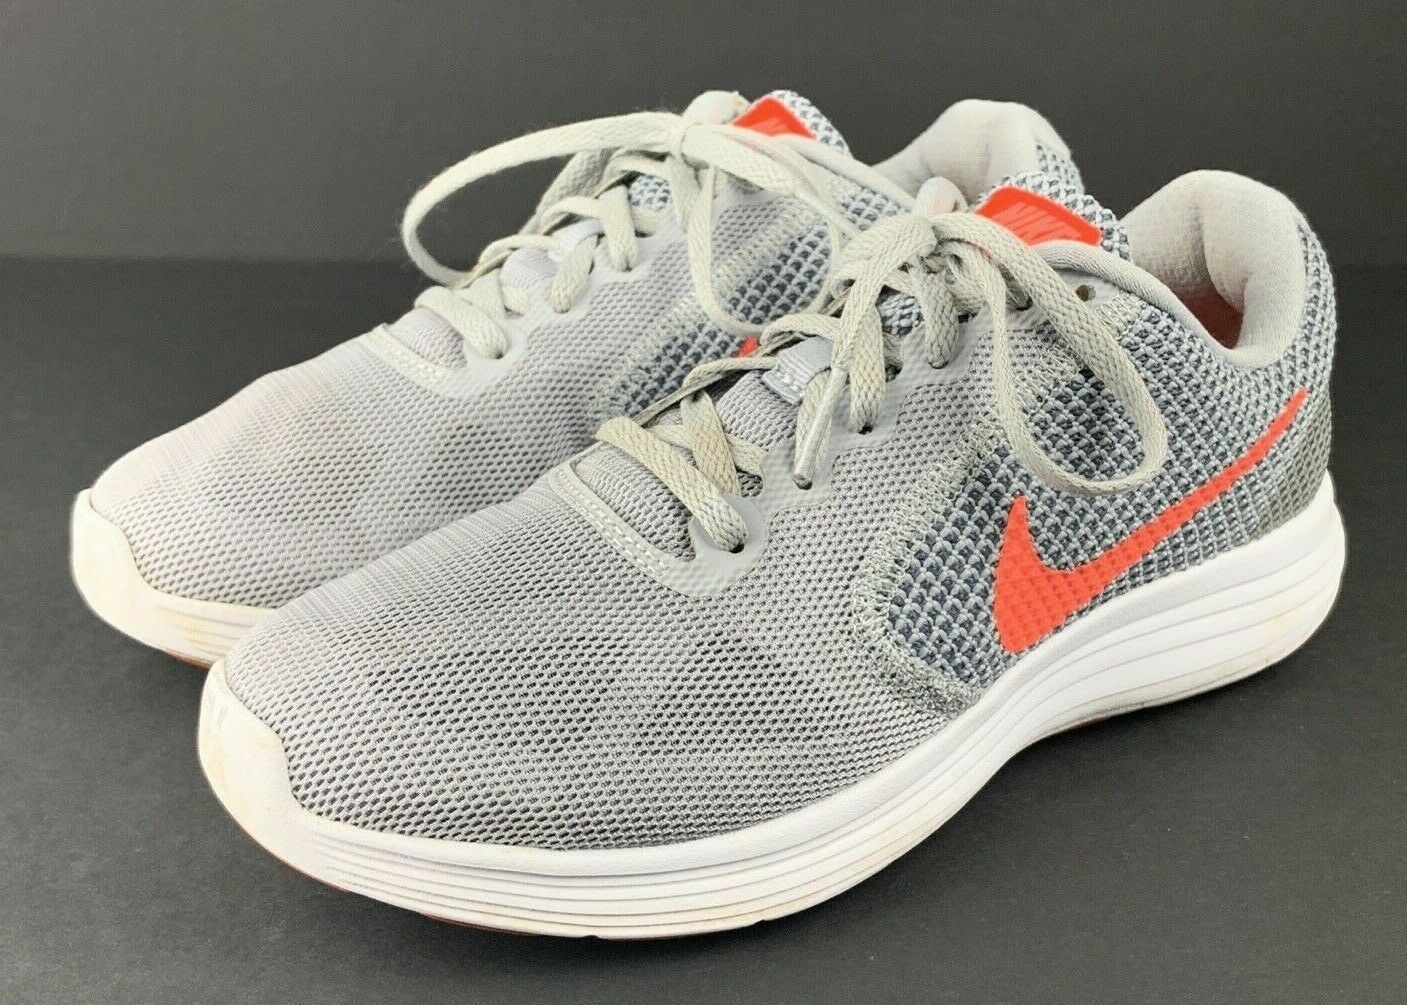 escaldadura Pólvora Higgins  Nike Revolution 3 Womens 819303-009 Grey Fire Pink Mesh Running Shoes Size  7.5 for sale online | eBay